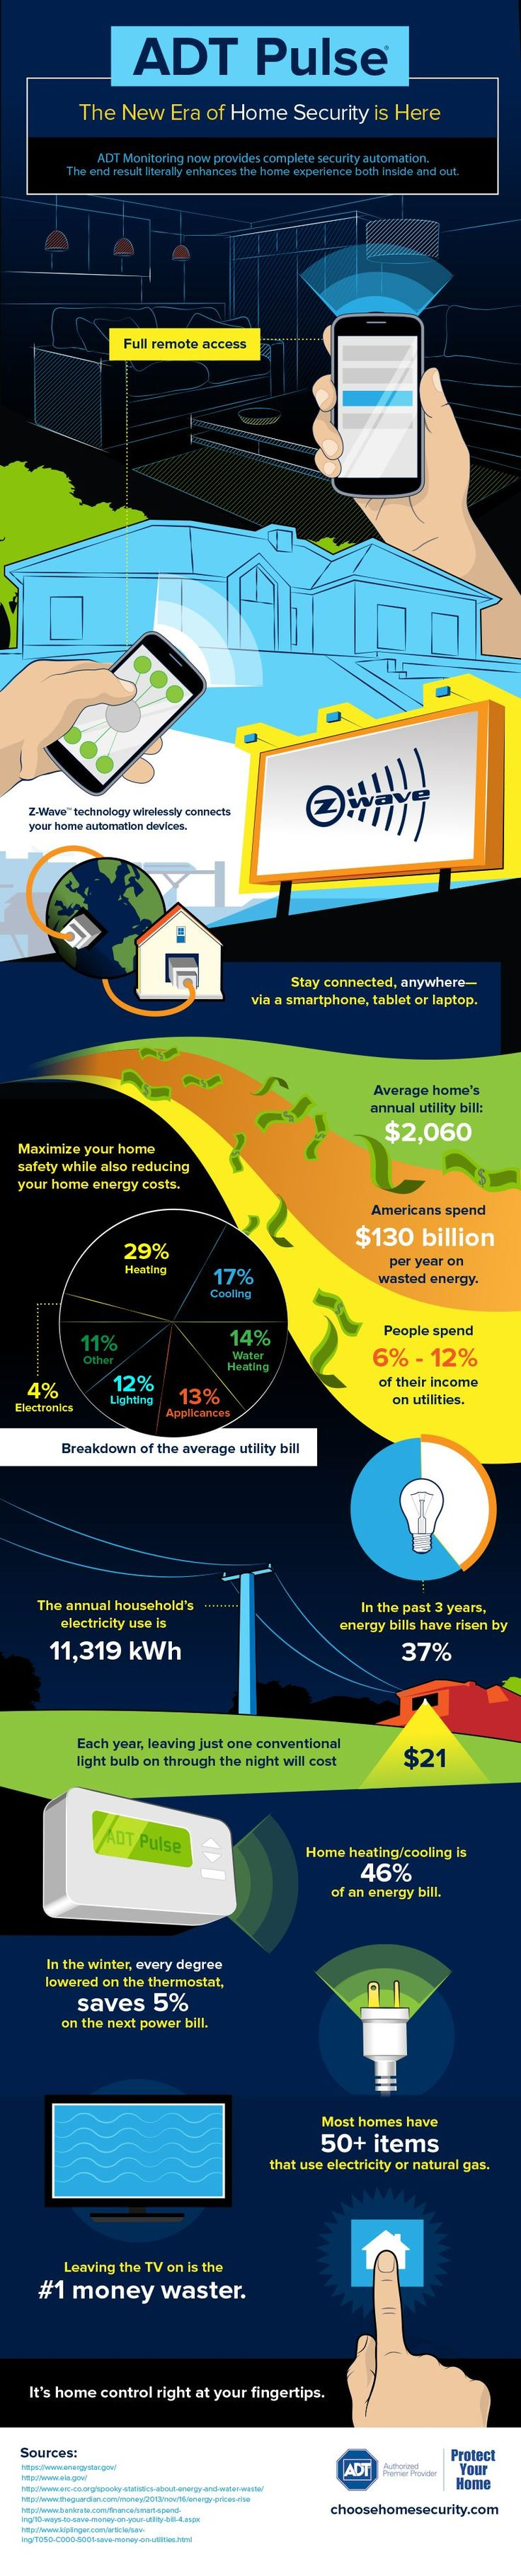 How ADT Pulse Is Revolutionizing Home Security Infographic